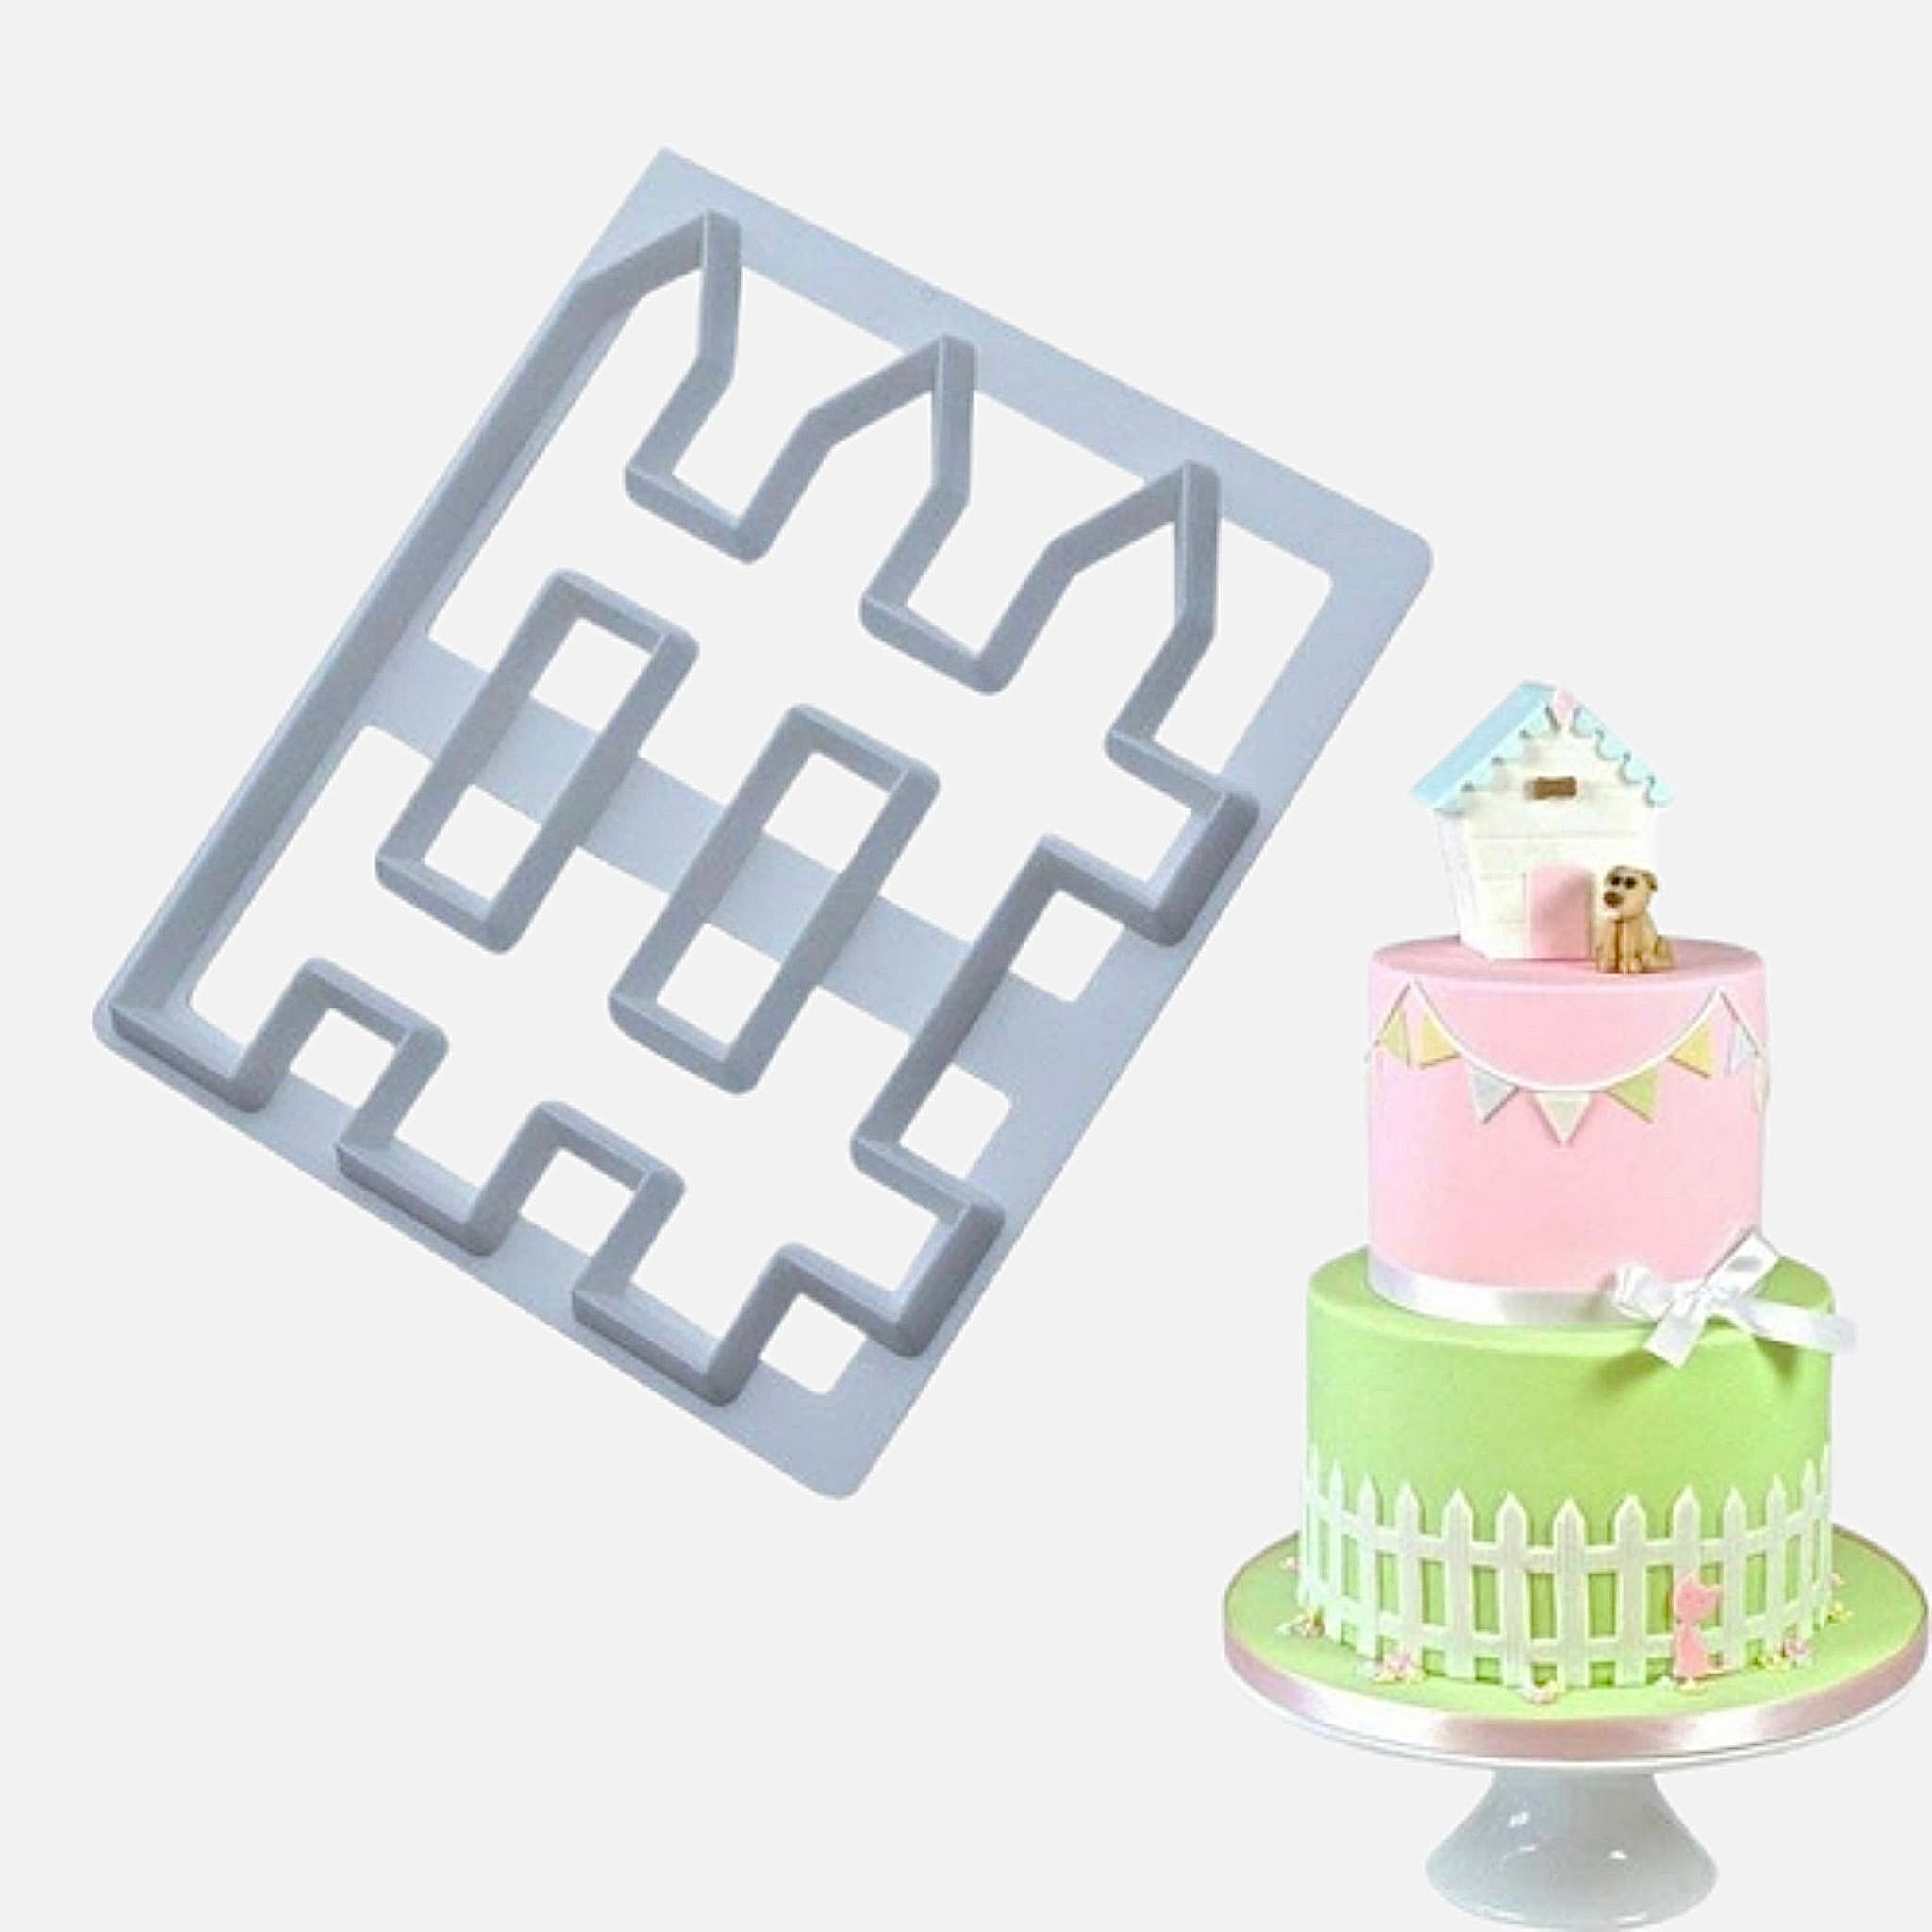 Biscuit Mold       Cute farm animal cutting mold pig sheep cow cartoon DIY fondant cake bakeware molds Trend Picket Fence design